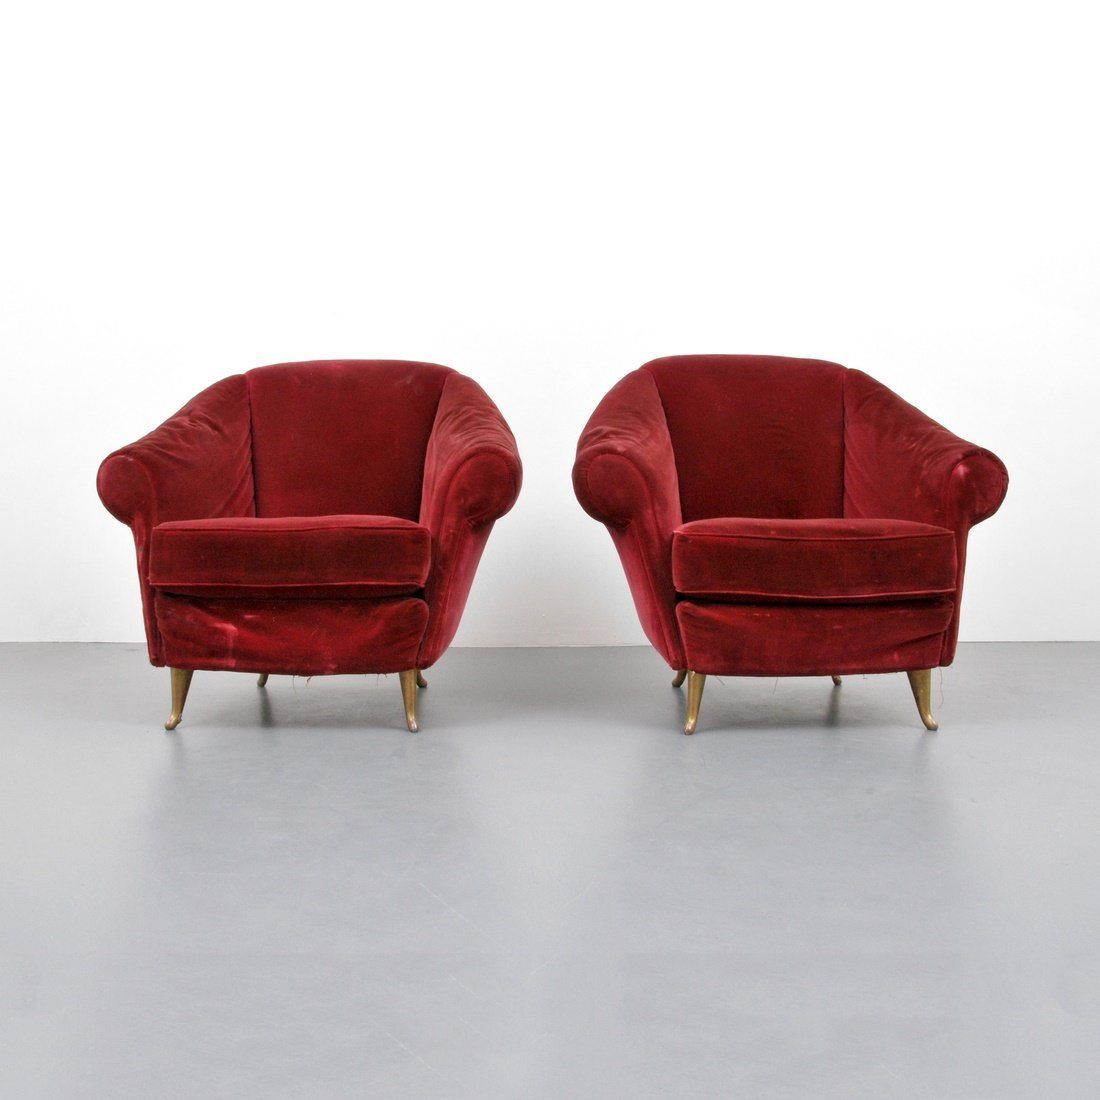 Gio Ponti 'Model 12690' Lounge Chairs